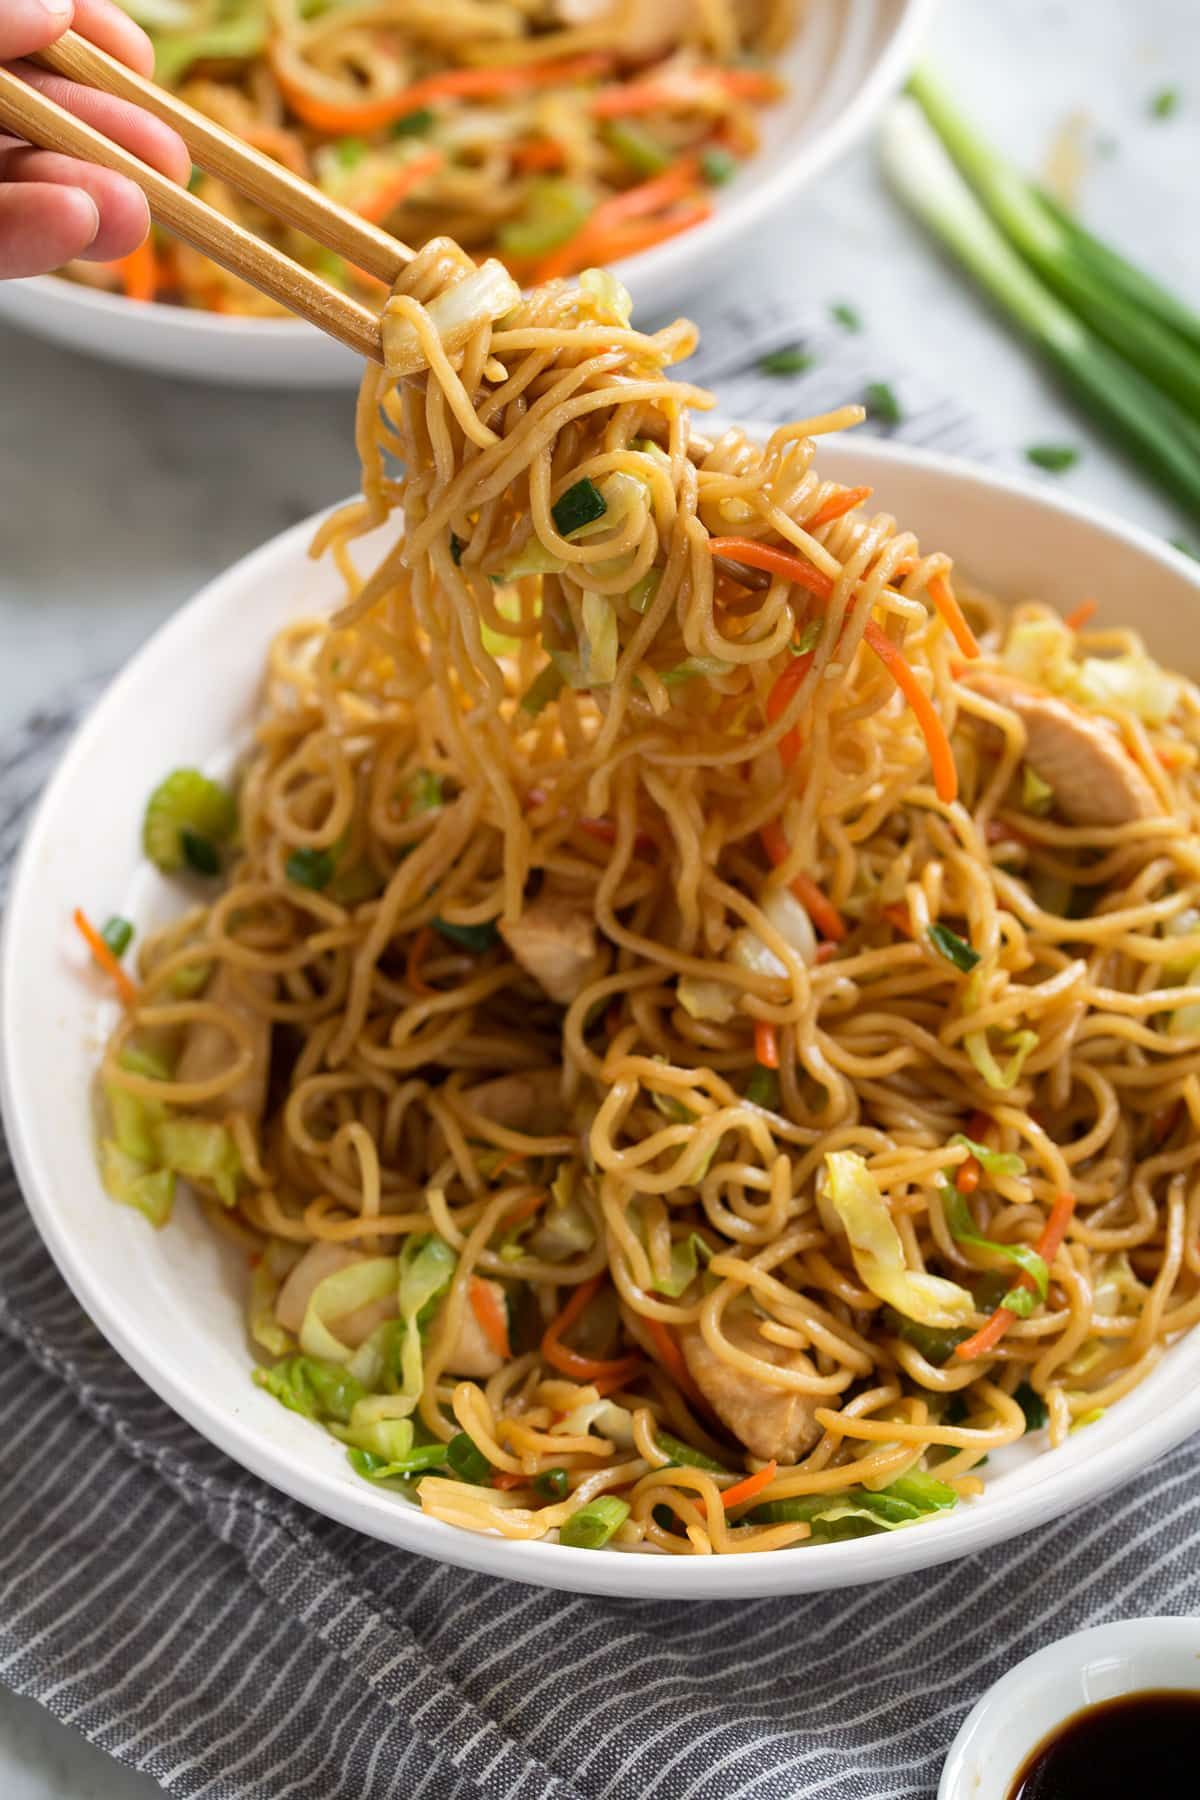 Ingredients 1 Lb Refrigerated Yakisoba Or Chow Mein Noodles 1 Lb